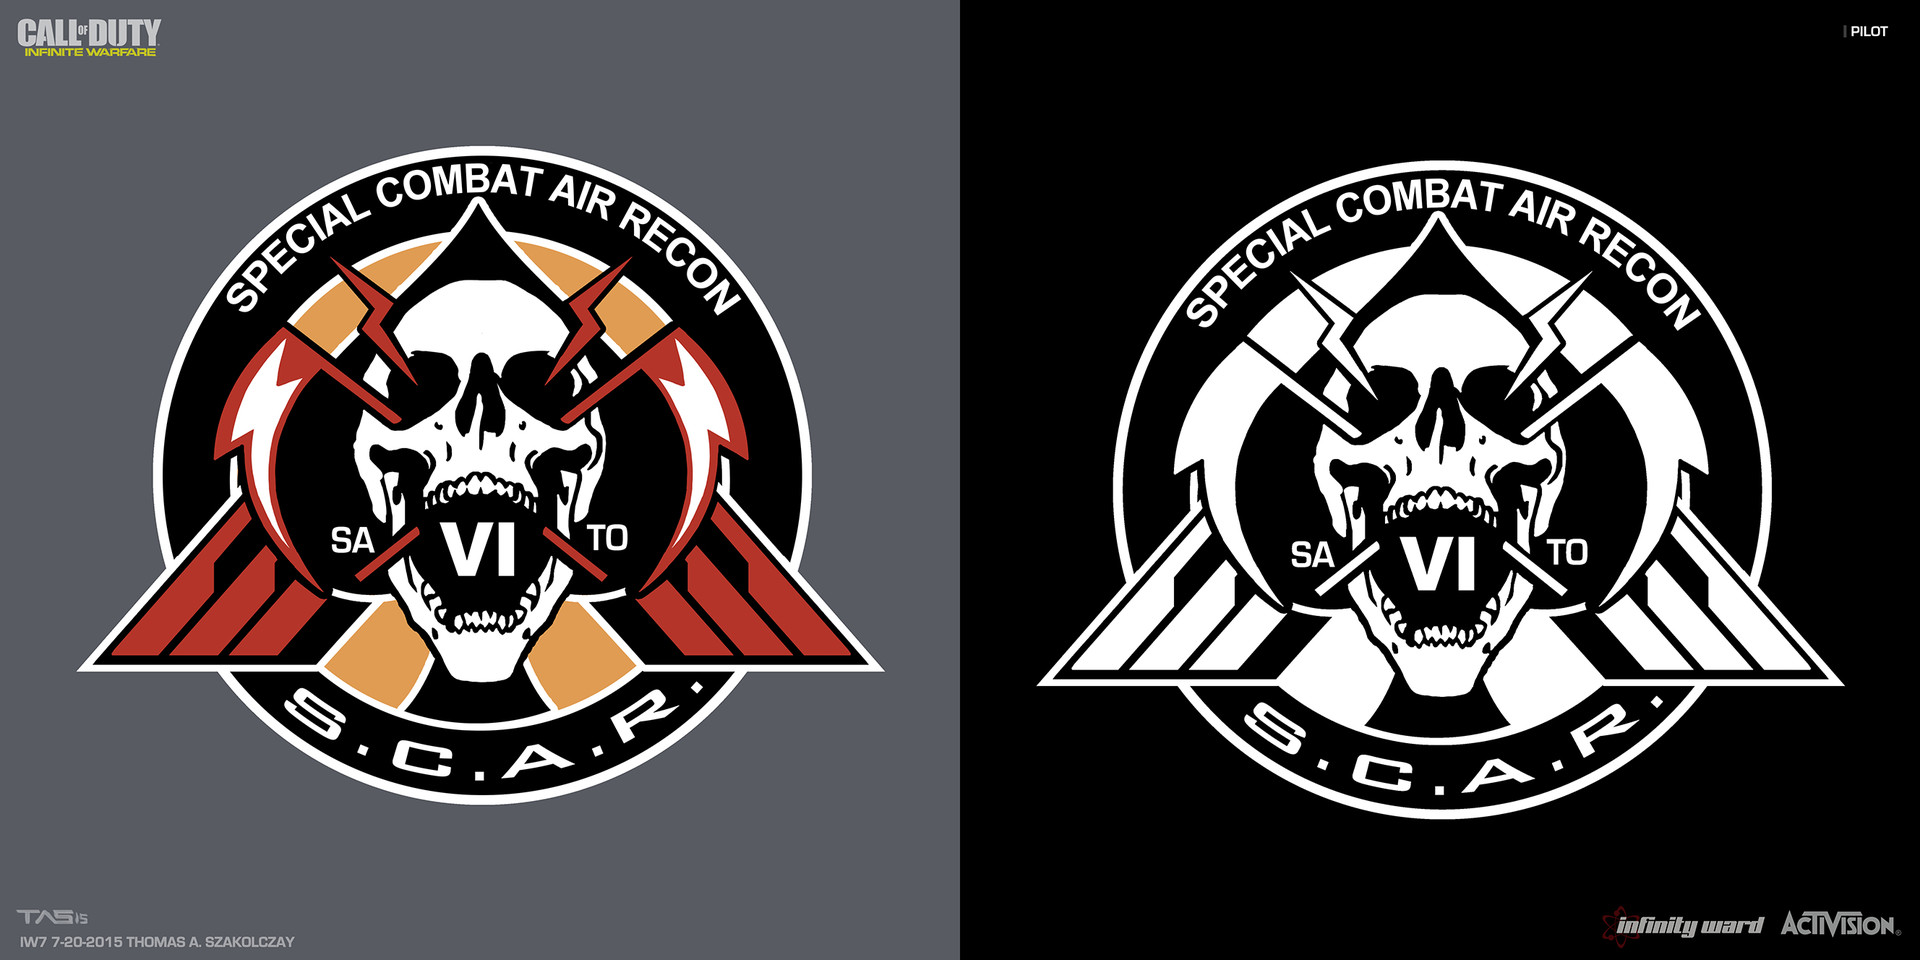 SCAR Unit Patch Design:  I was going for something aggressive to represent how badass these pilot / spec ops soldiers are. The screaming skull with 2 lighting scythes forming a spade does that well i think.